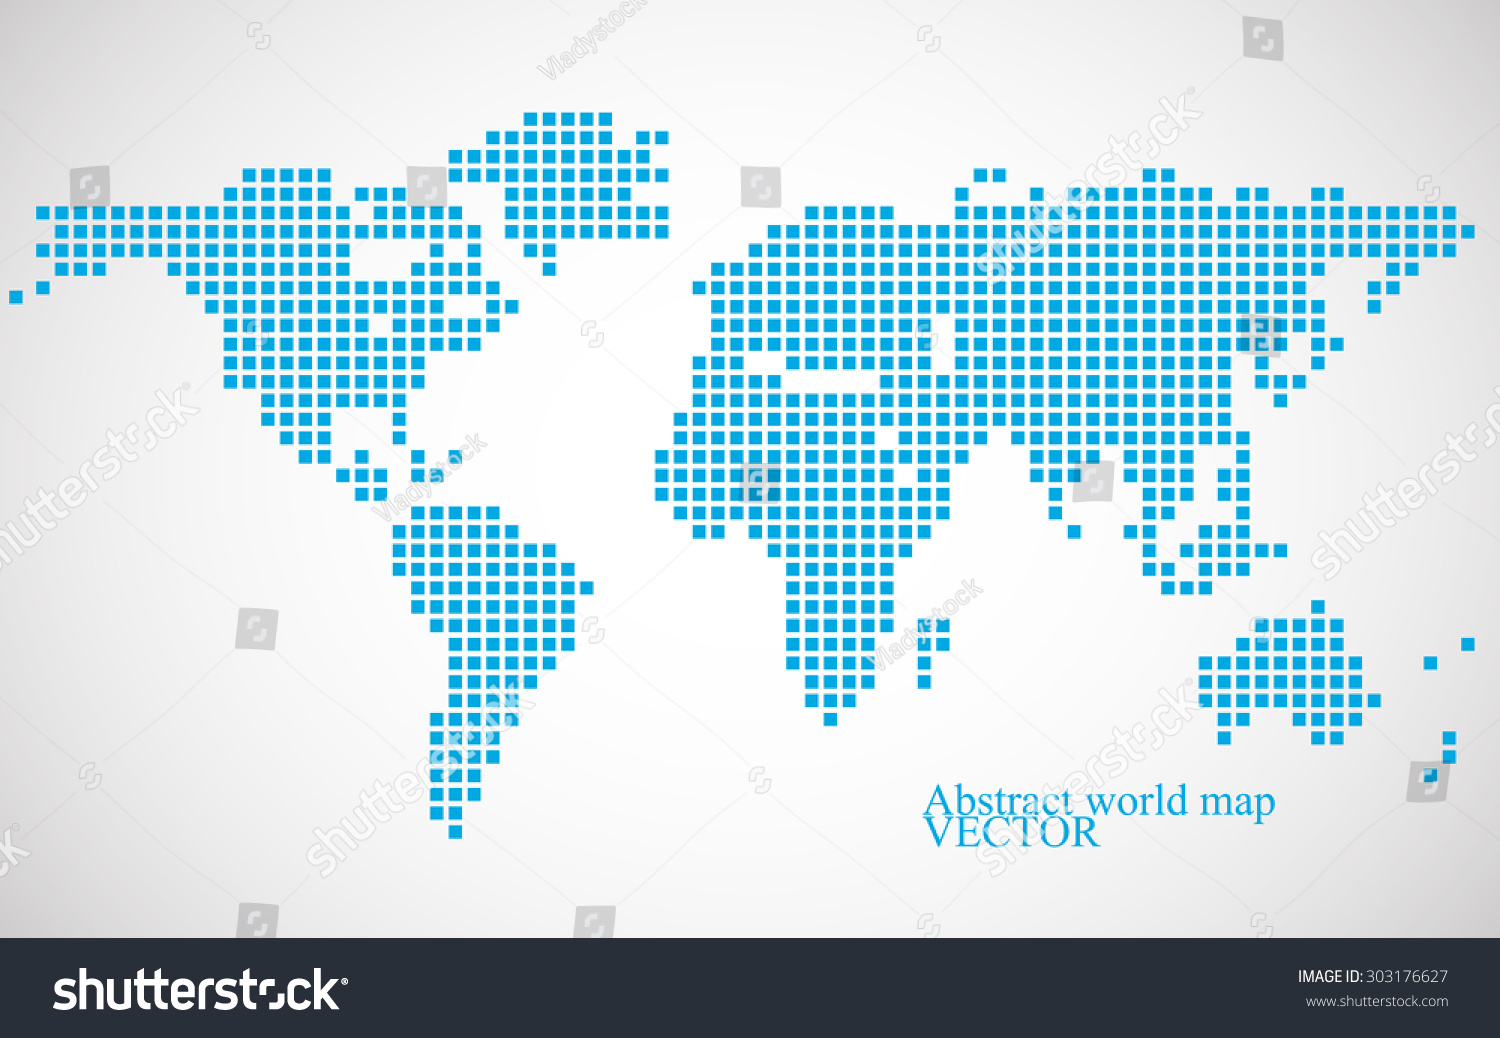 Abstract world map colorful pixel background stock vector 303176627 abstract world map colorful pixel background stock vector 303176627 shutterstock gumiabroncs Images